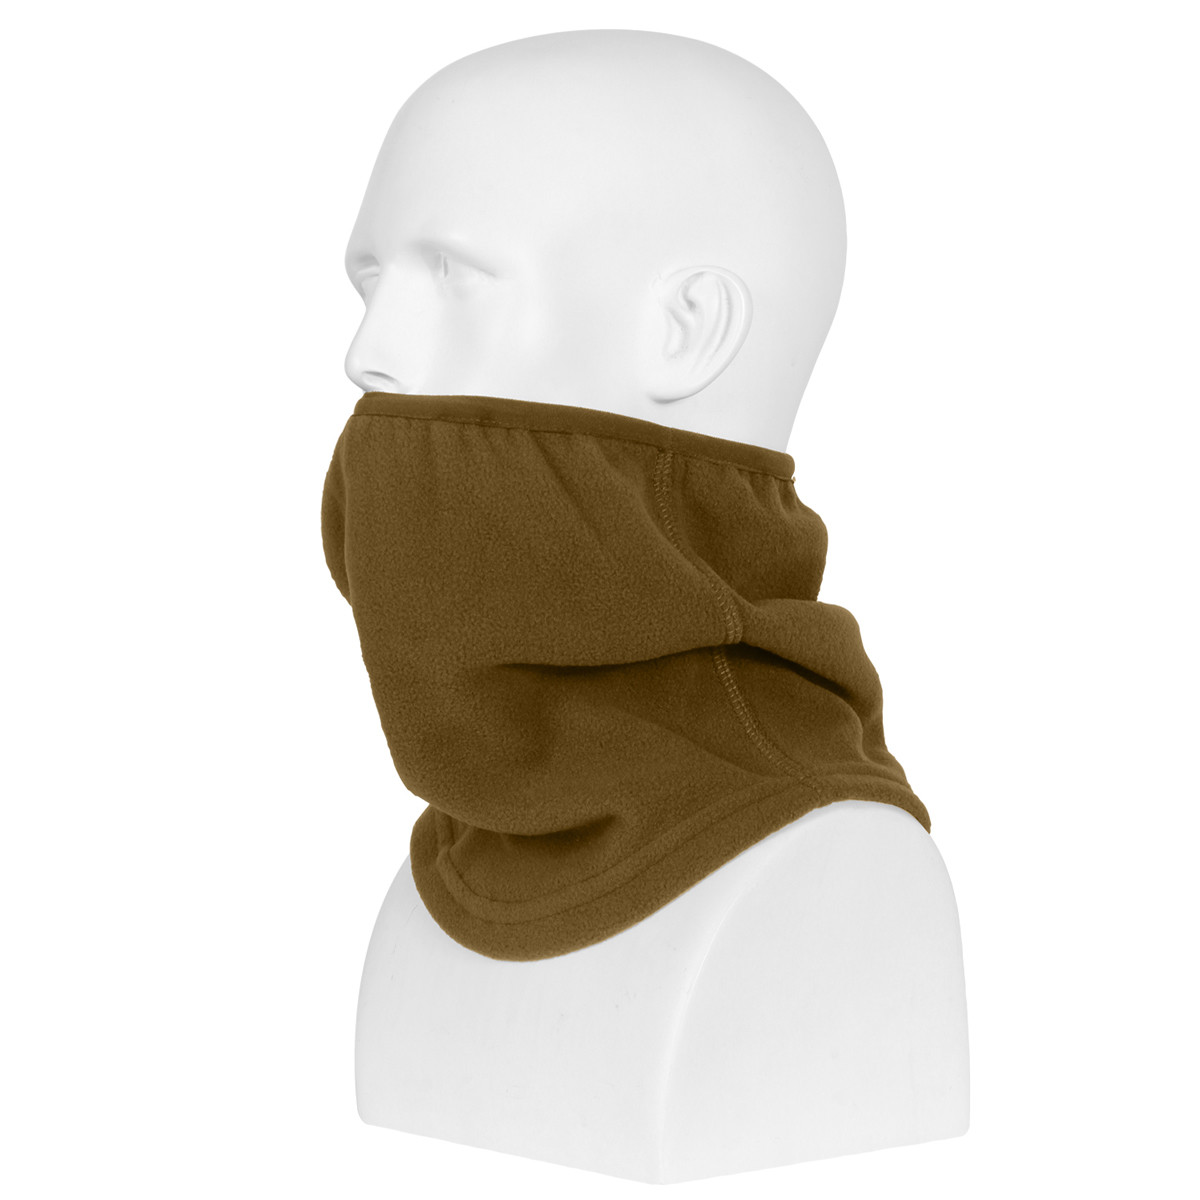 Shop Polar Fleece Neck Gaiter Fatigues Army Navy Gear